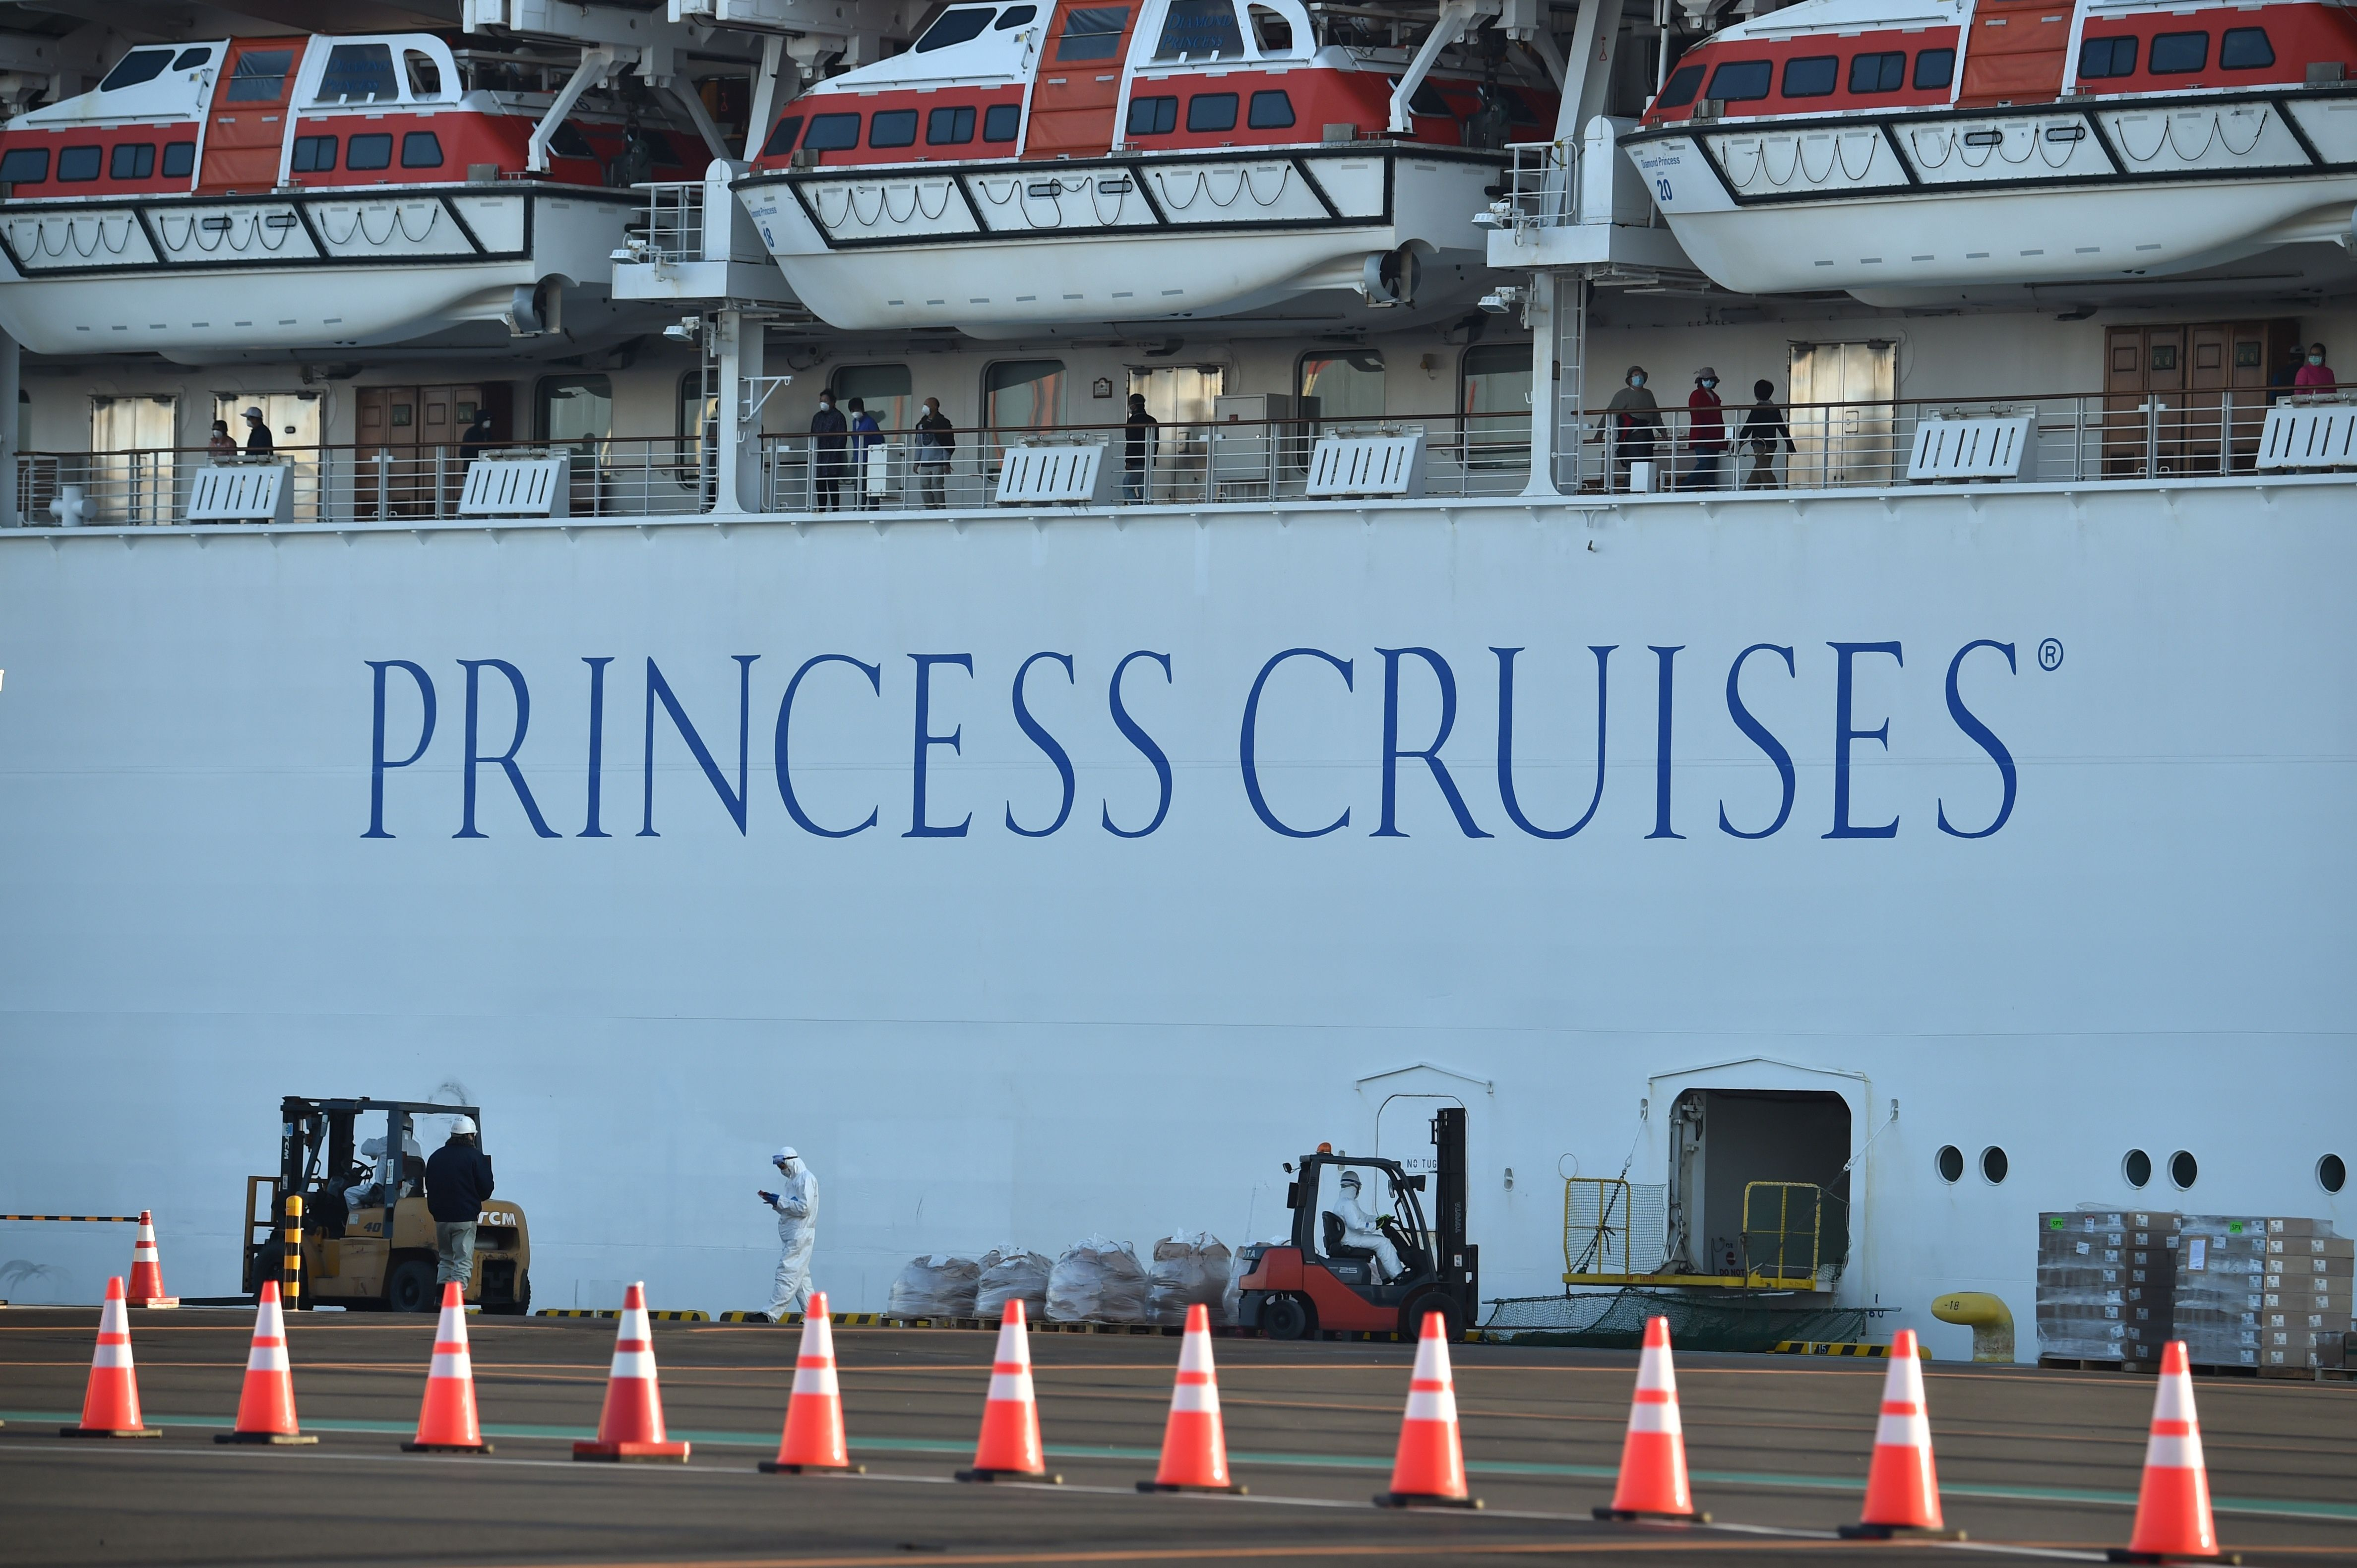 The US will evacuate Americans from Diamond Princess cruise ship docked in Japan